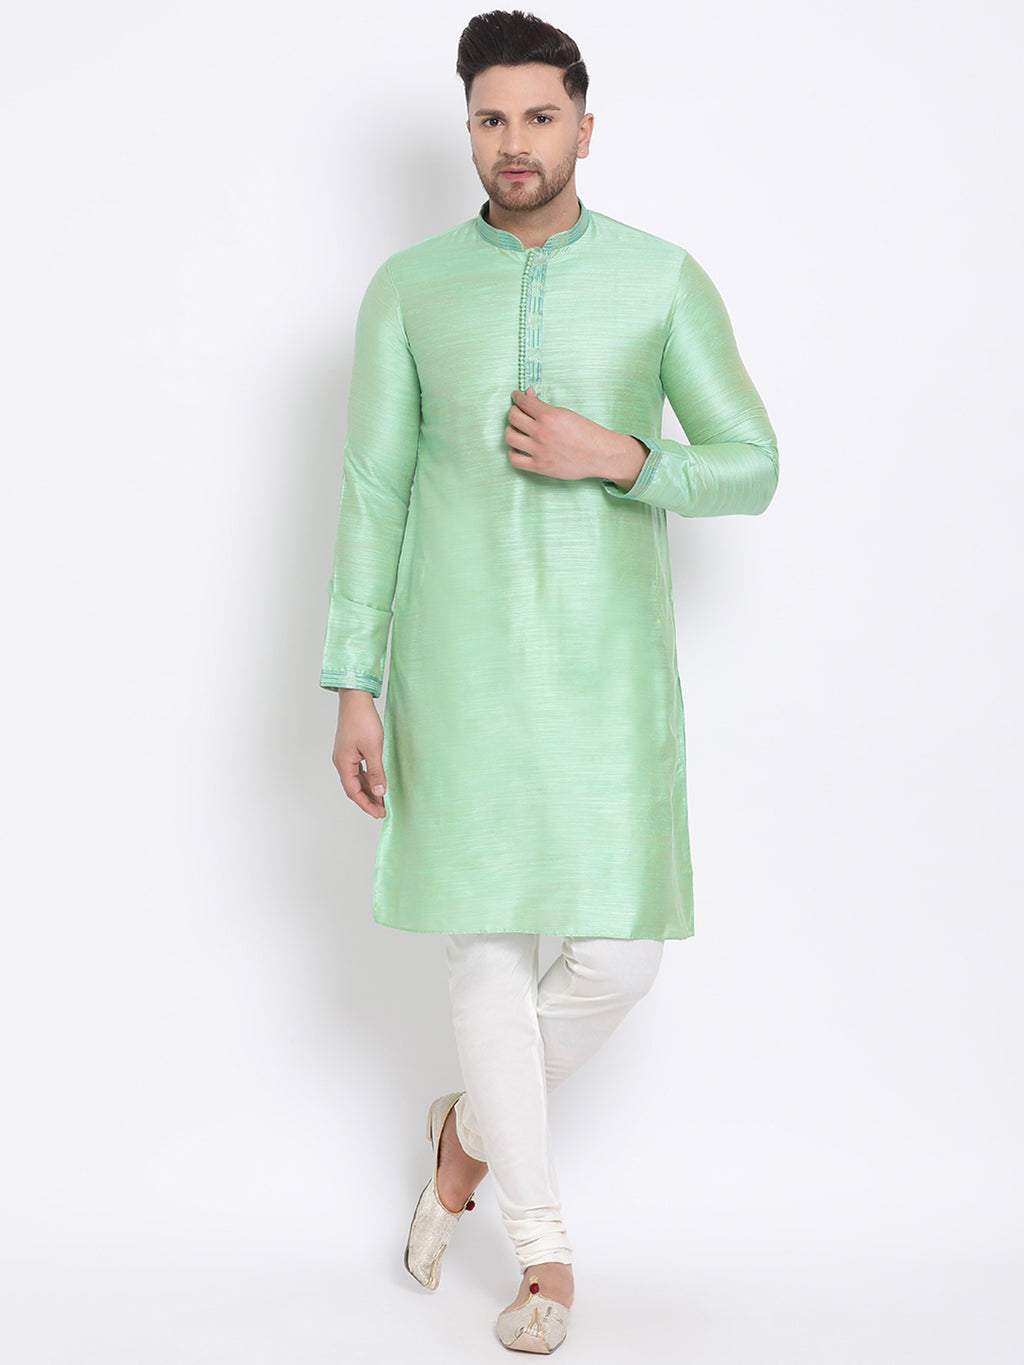 ONN  Men's Polo T-Shirt -NC432 (1-15) Variants